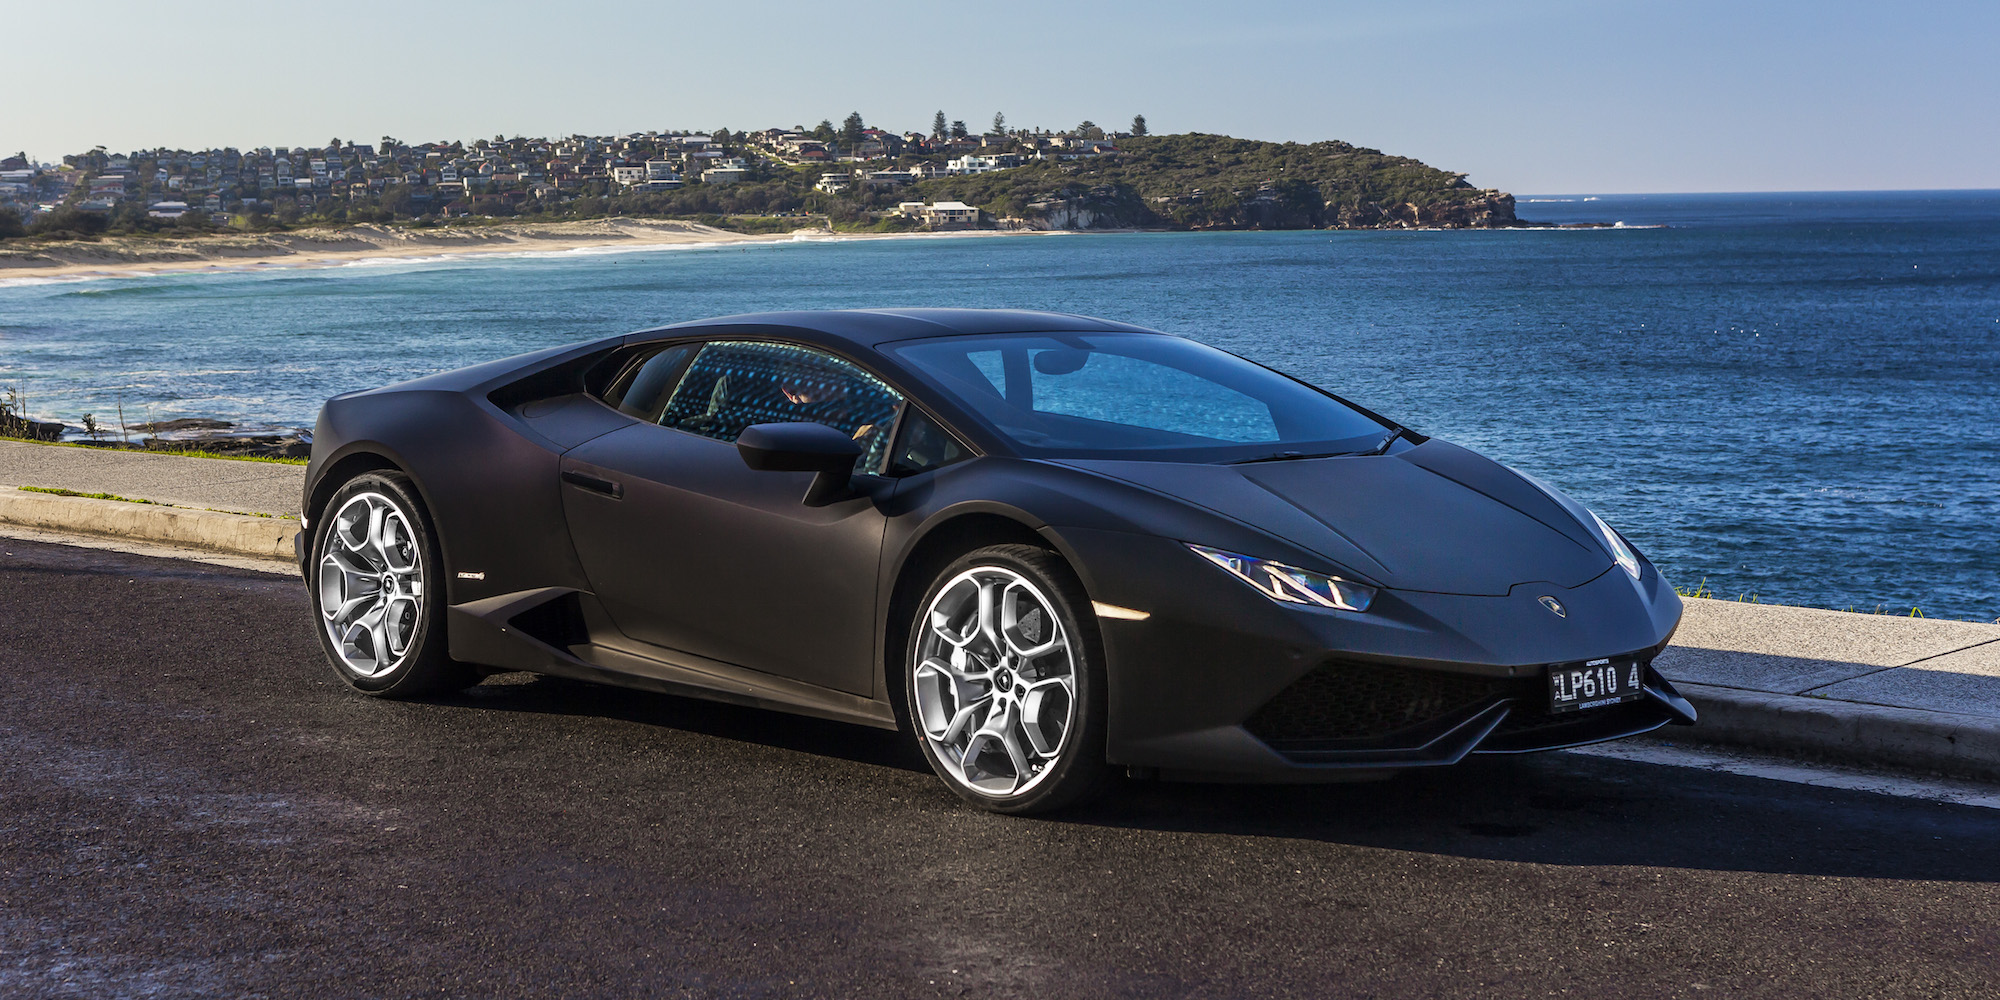 2018 Lamborghini Huracan LP610 4 photo - 5